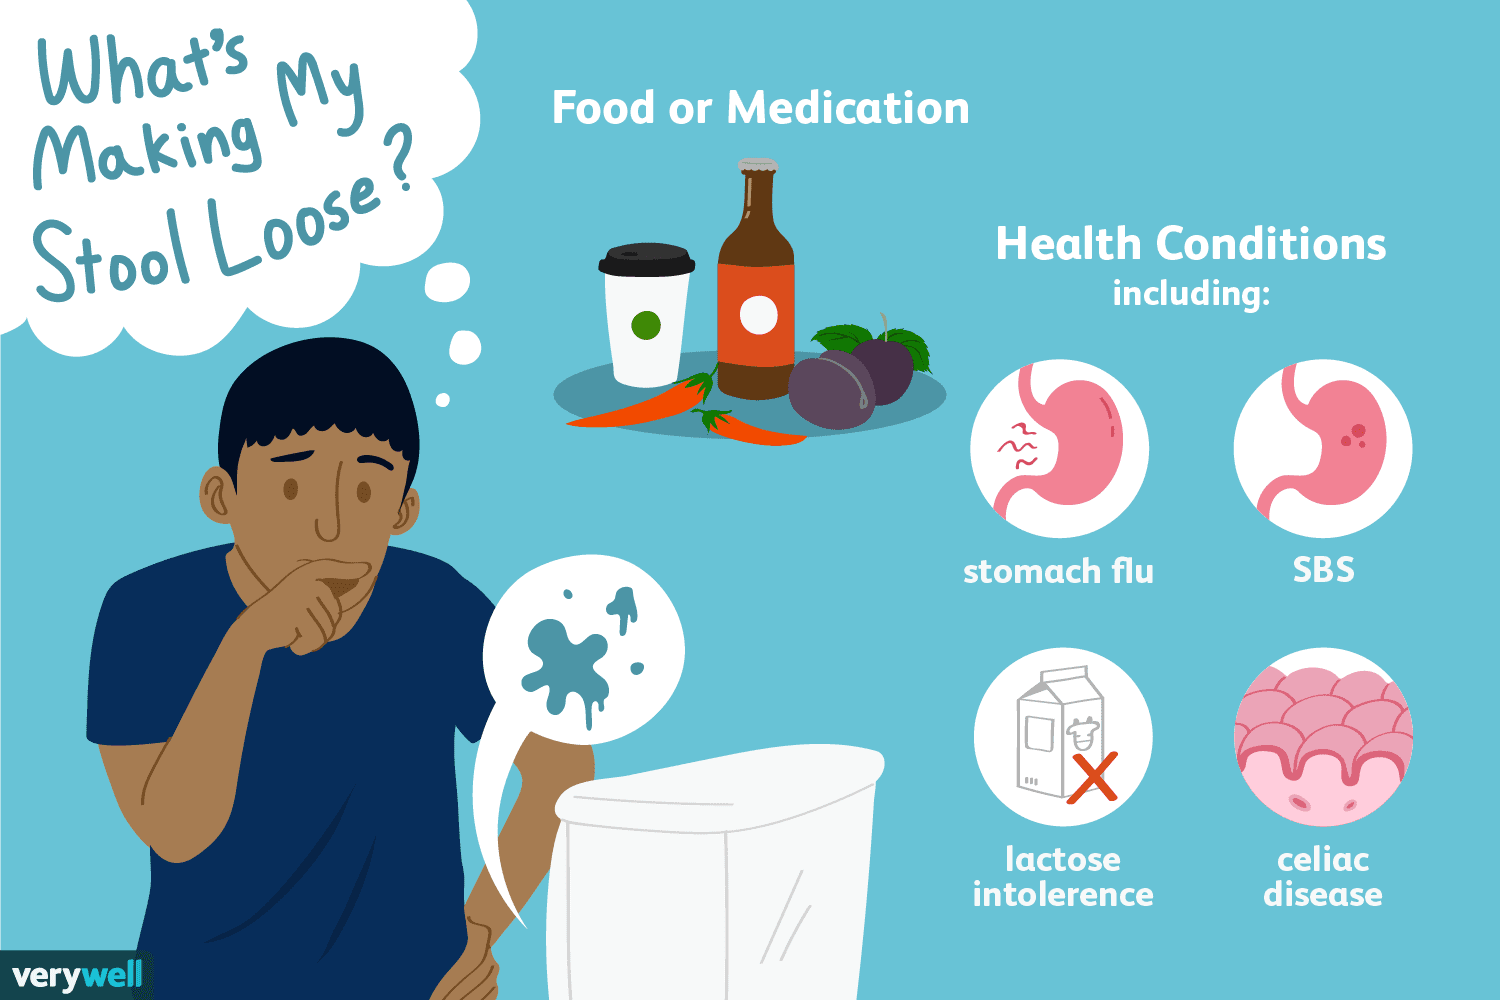 Causes Of Loos Stool Include Food Or Medications And Various Health Conditions